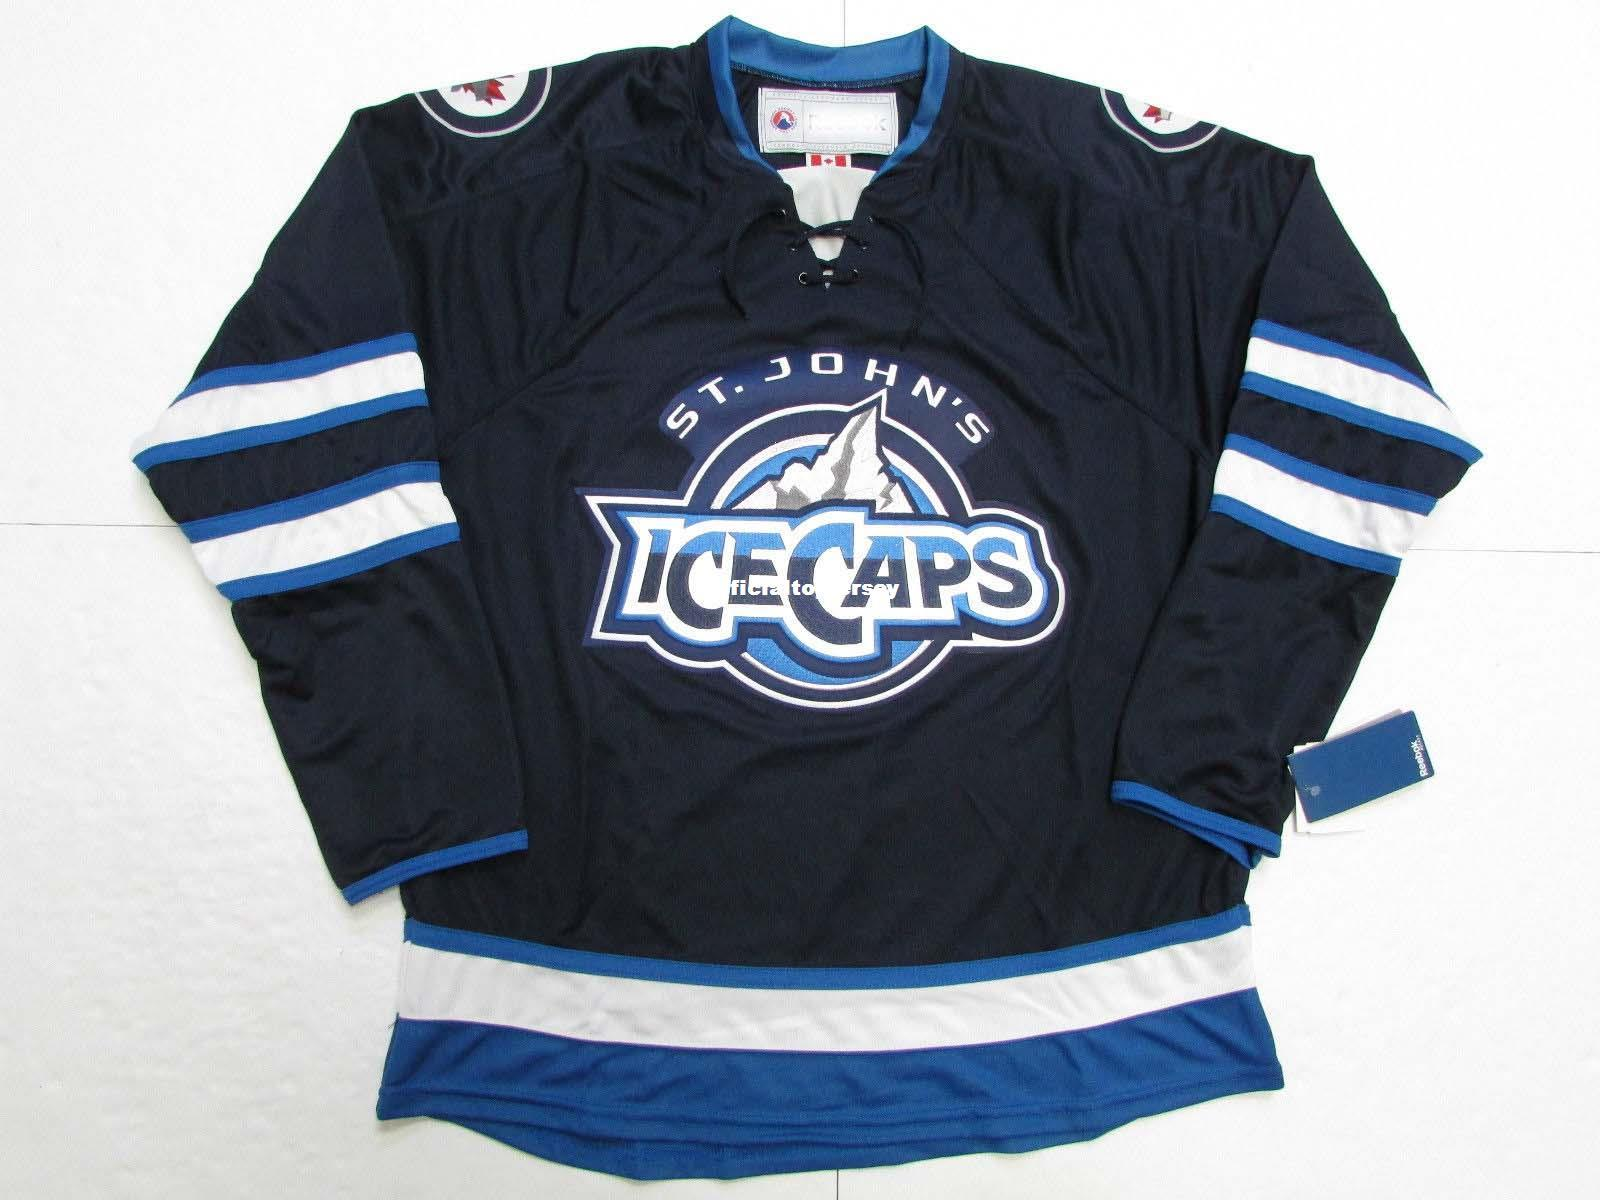 newest 6e8df 5926c Cheap Custom ST. JOHN S ICE CAPS BLUE AHL PREMIER HOCKEY JERSEY Mens  Stitched Personalized Any number Any name Jerseys